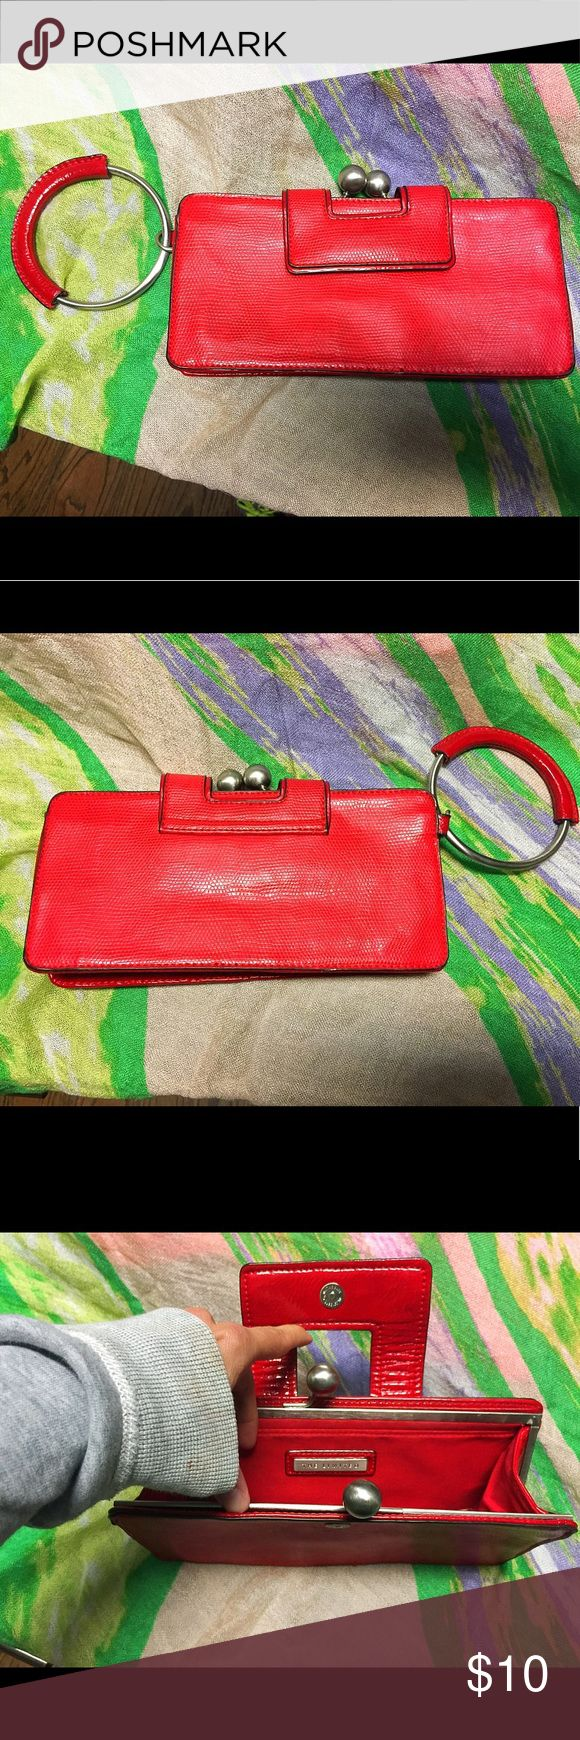 Red clutch The limited red clutch Bags Clutches & Wristlets